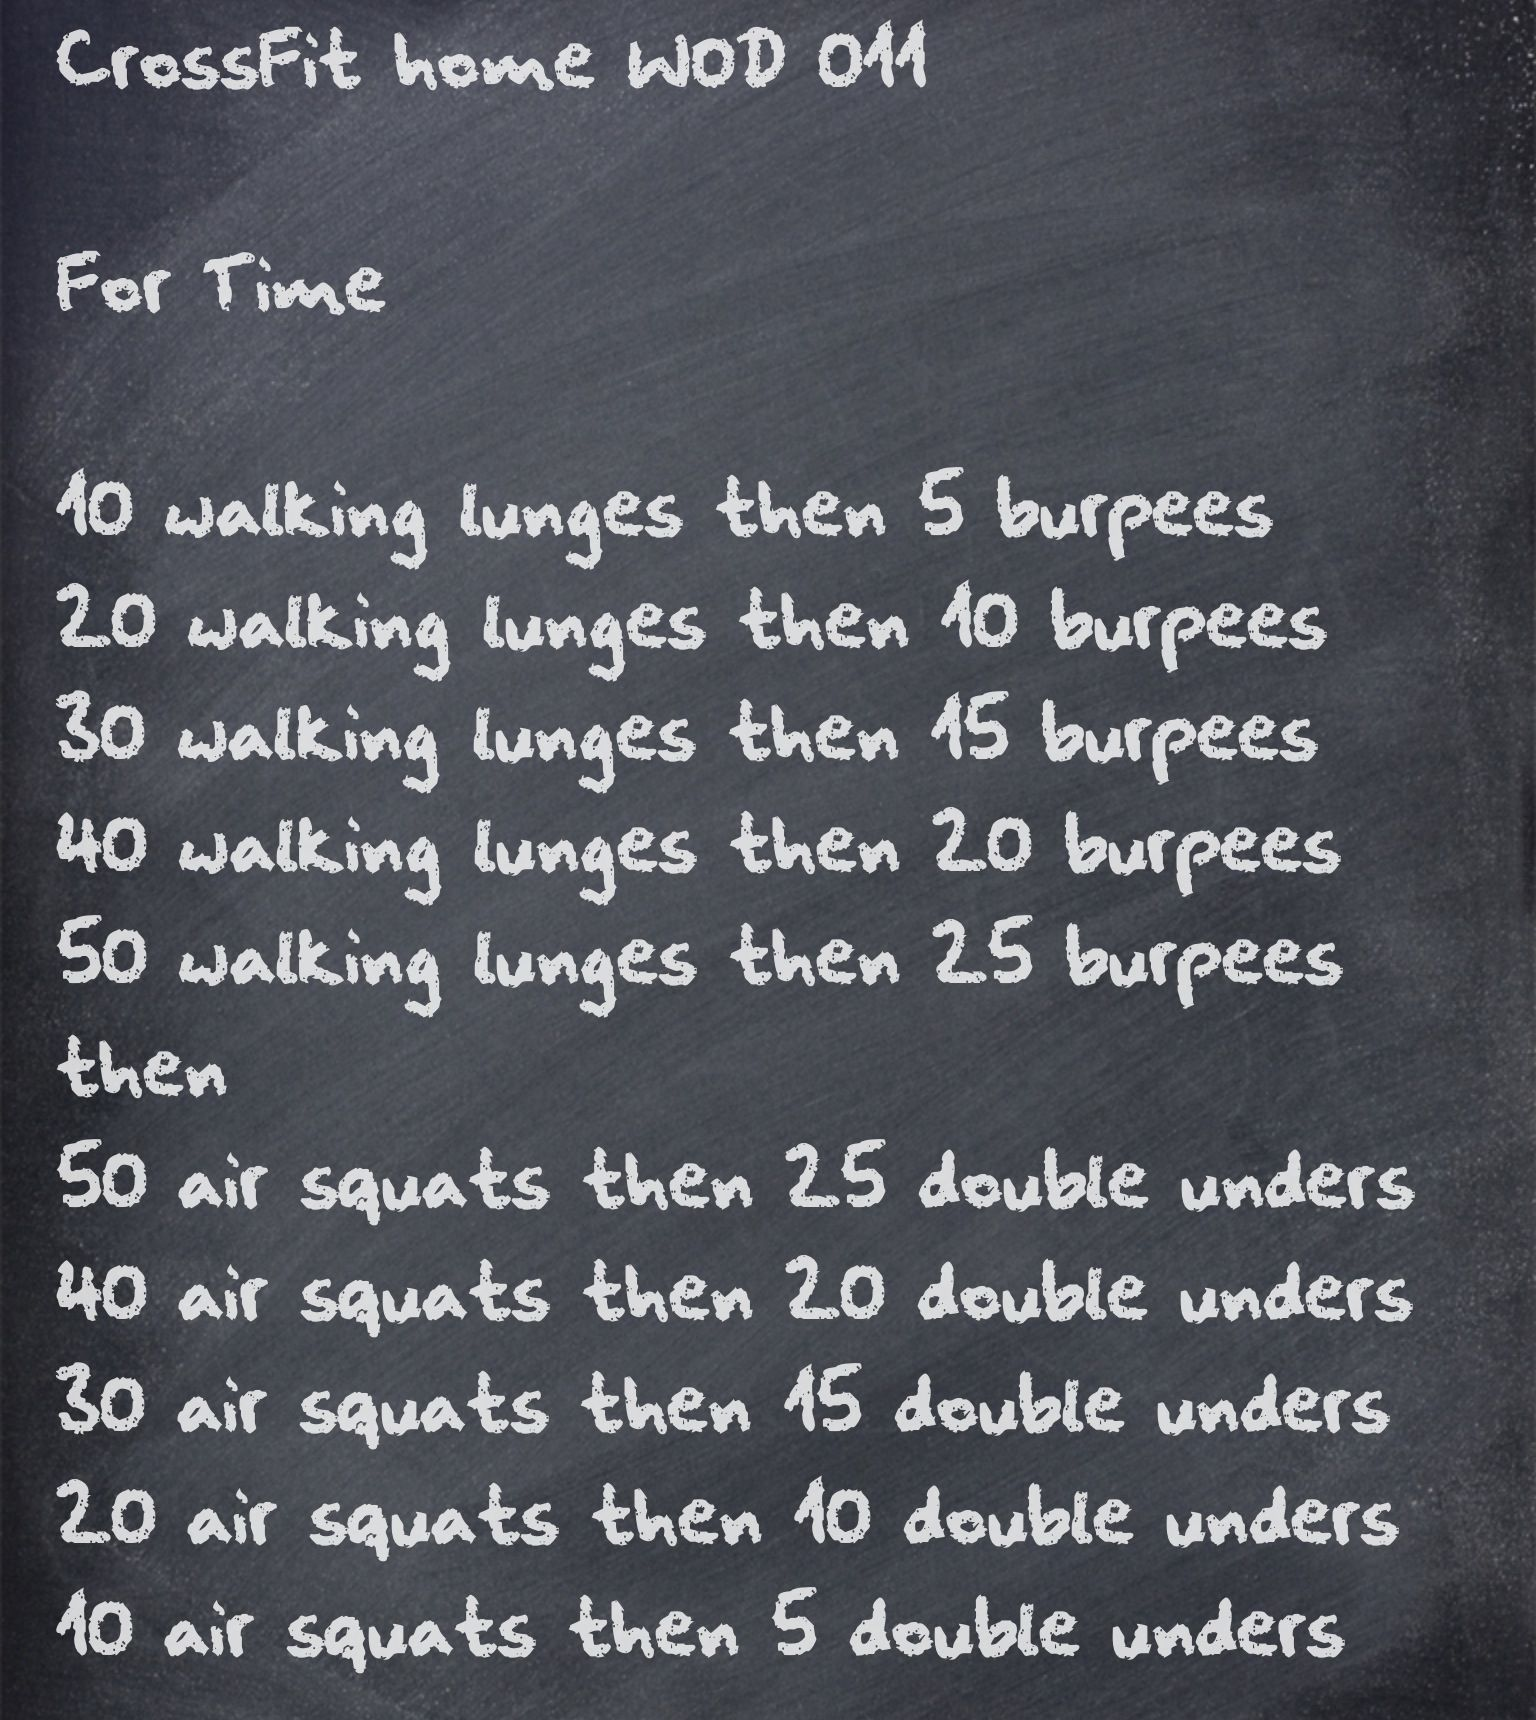 CrossFit home WOD Written by RY (These are a lot easier to Pin than they are to actually DO) ;-)